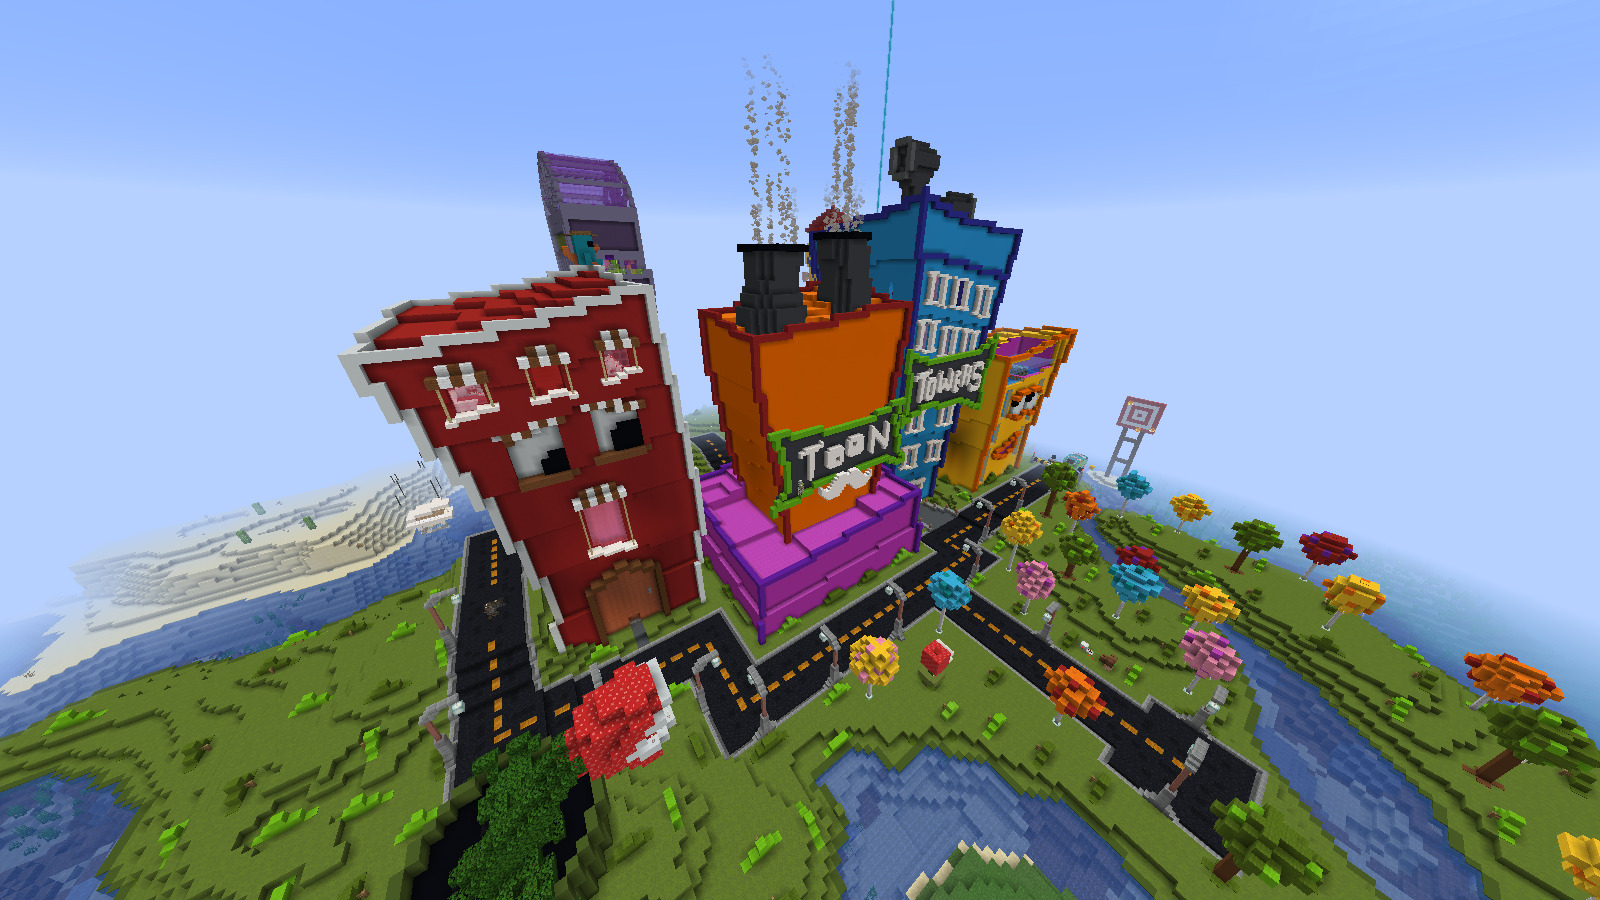 Toon Towers